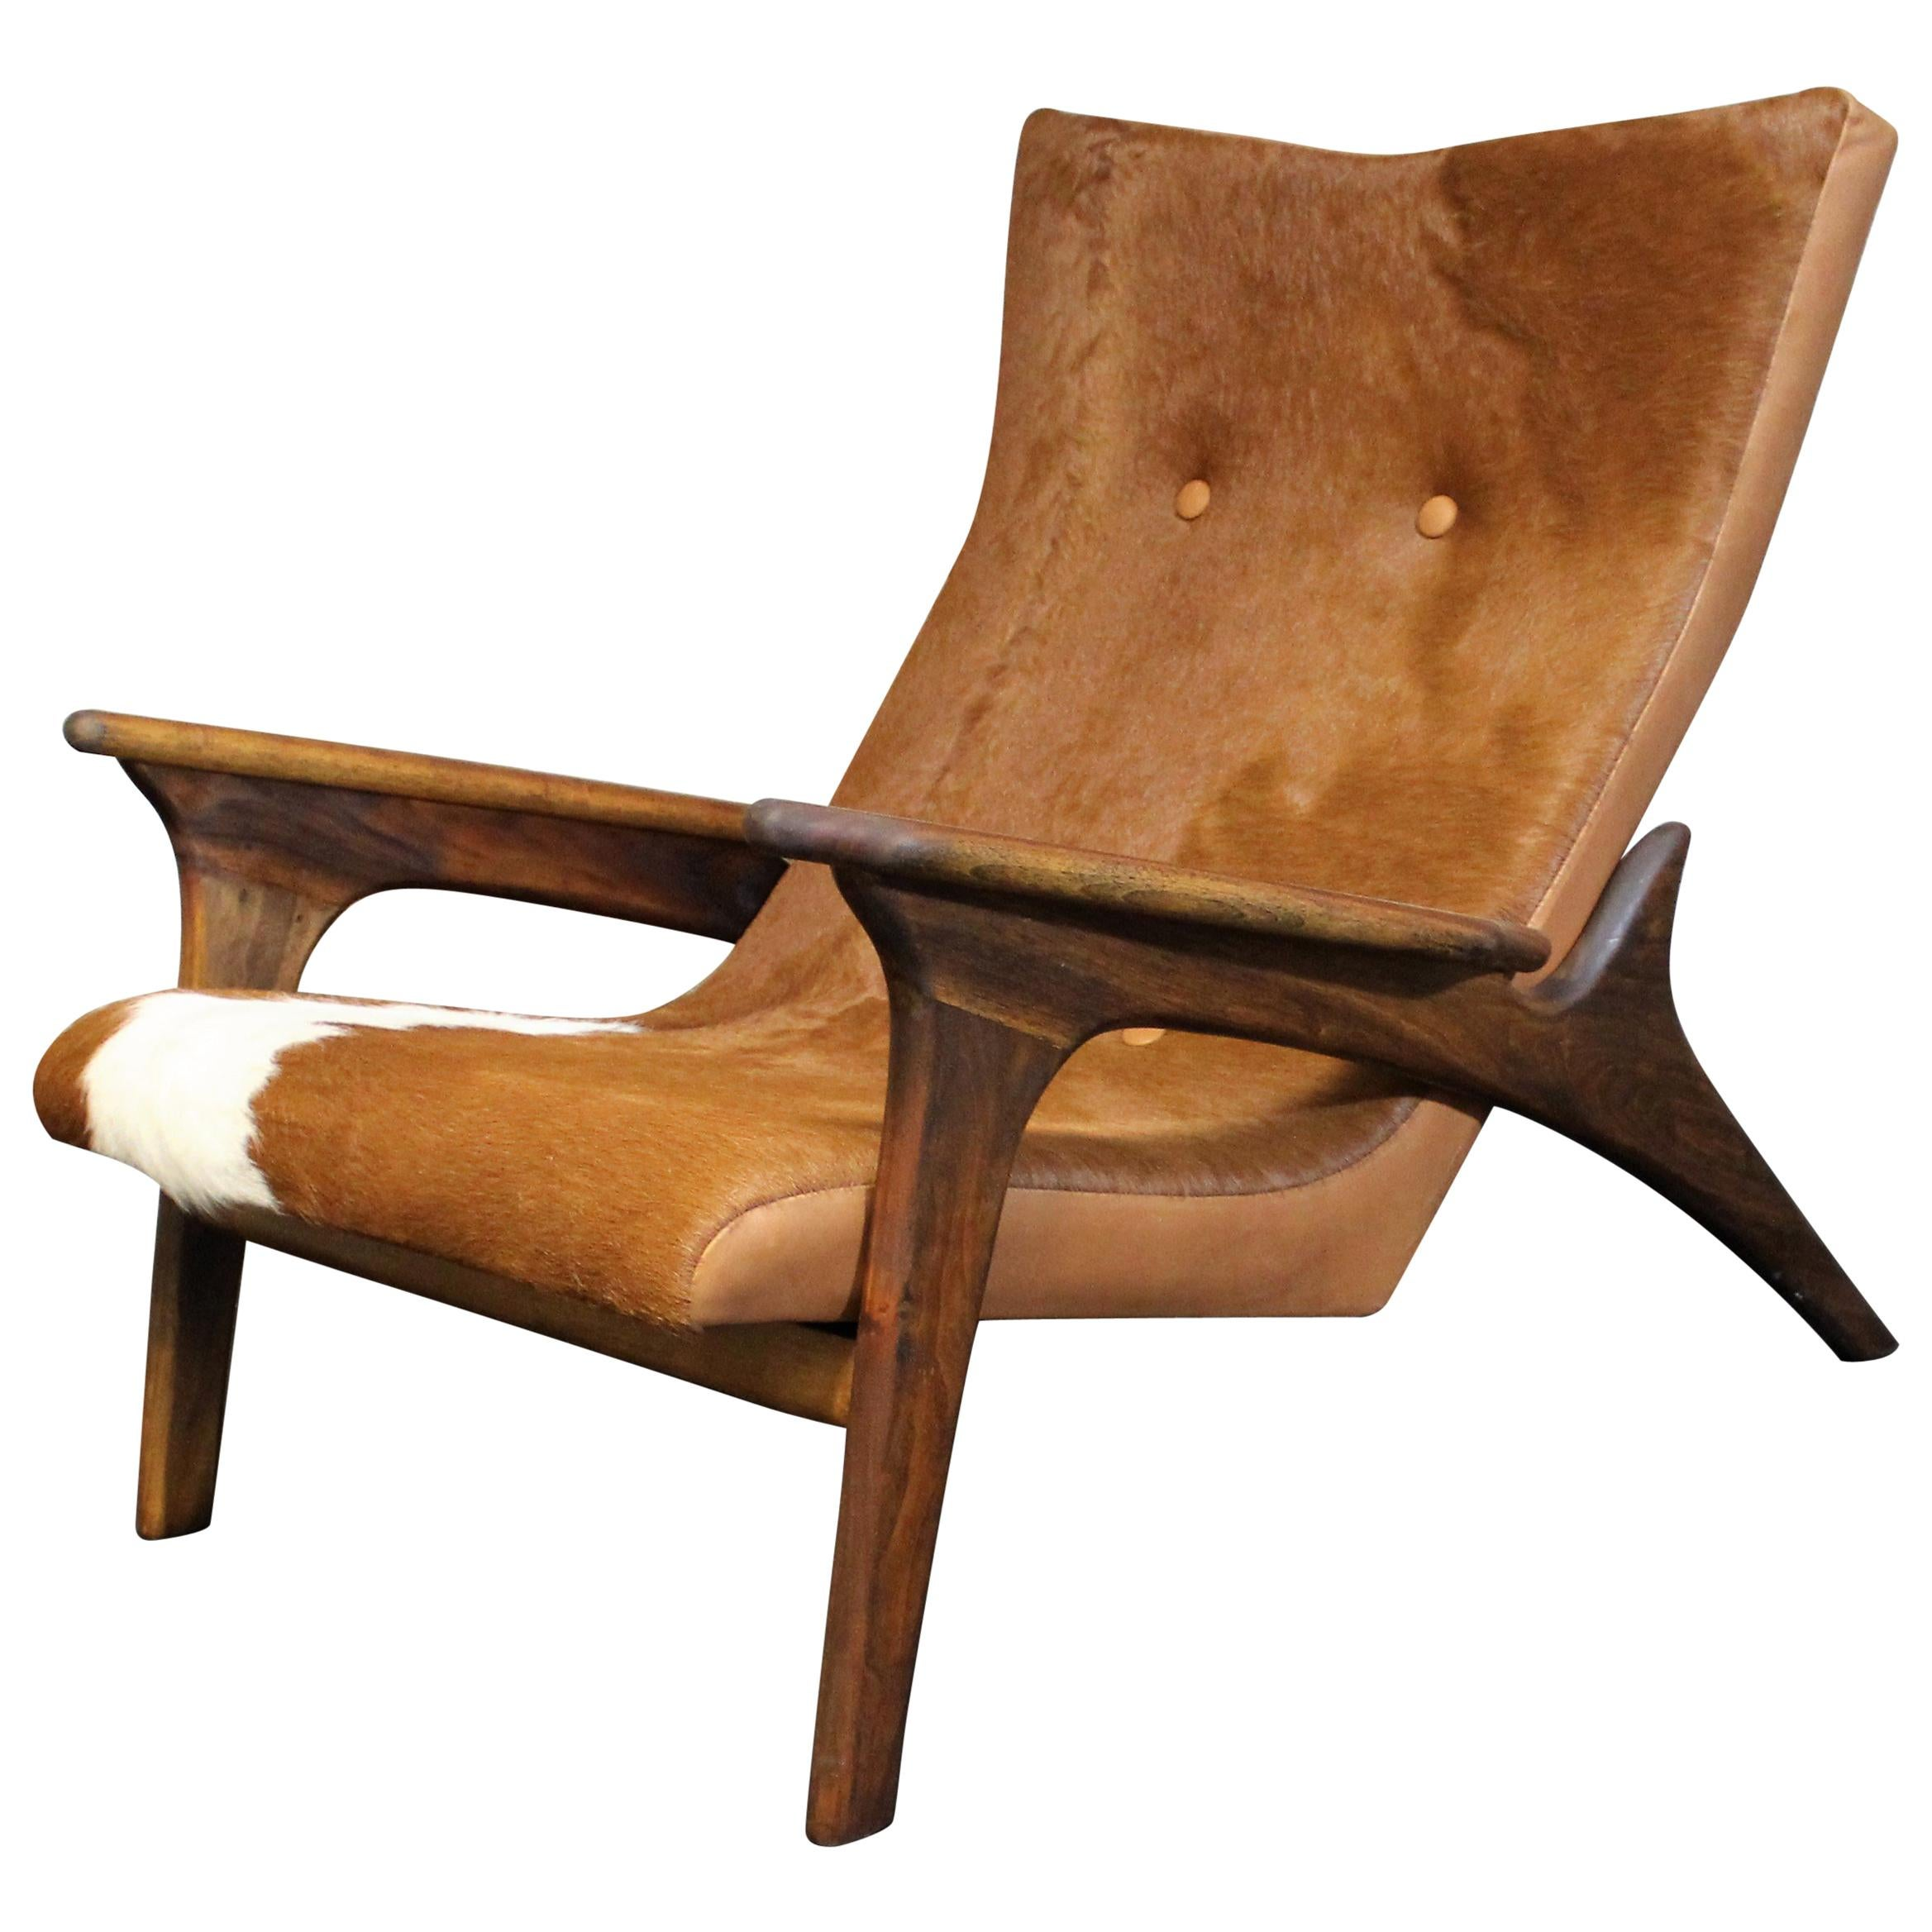 adrian pearsall lounge chair wholesale barber chairs model 990 lc mid century modern at 1stdibs for sale